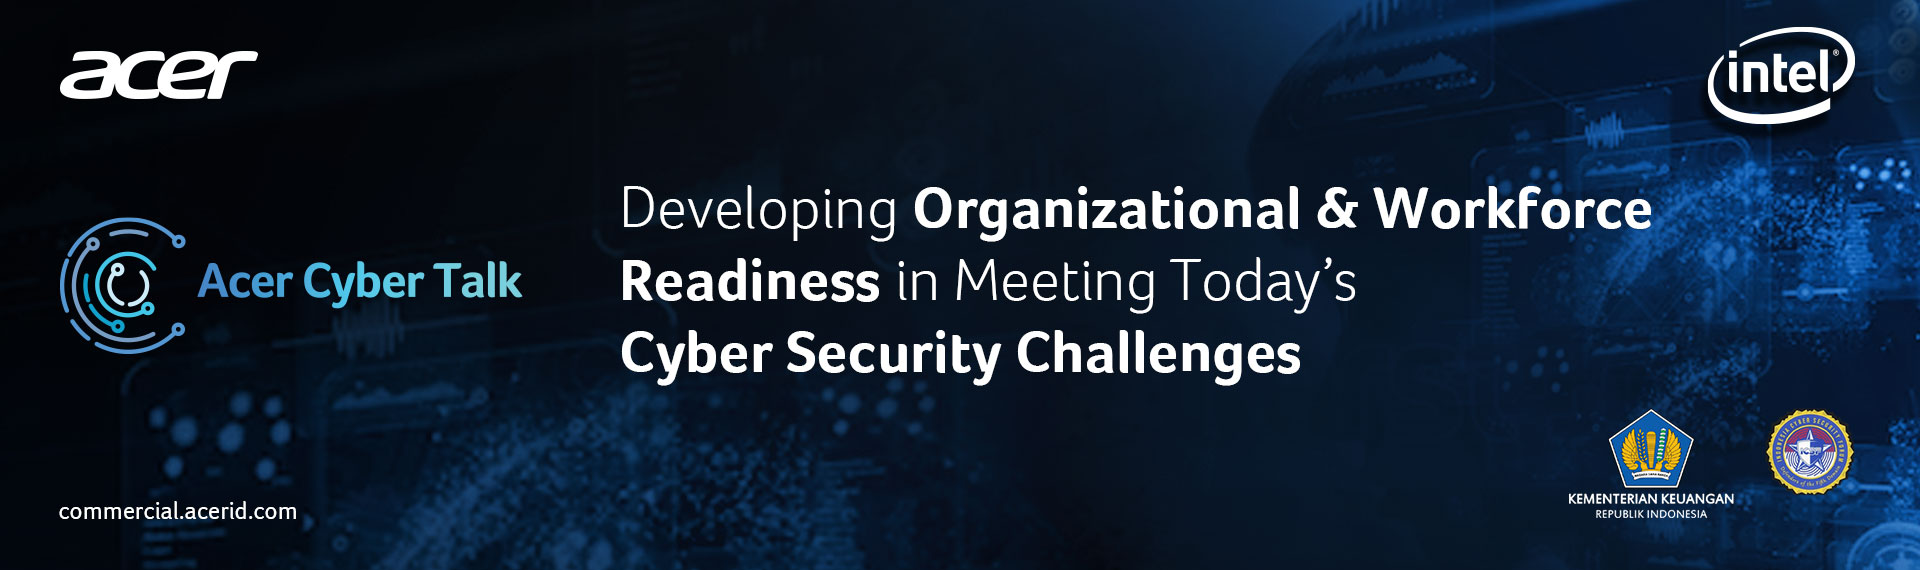 """Webinar Acer Cyber Talk, """"Developing Organizational & Workforce Readiness in Meeting Today's Cyber Security Challenges"""". Daftar Sekarang!"""